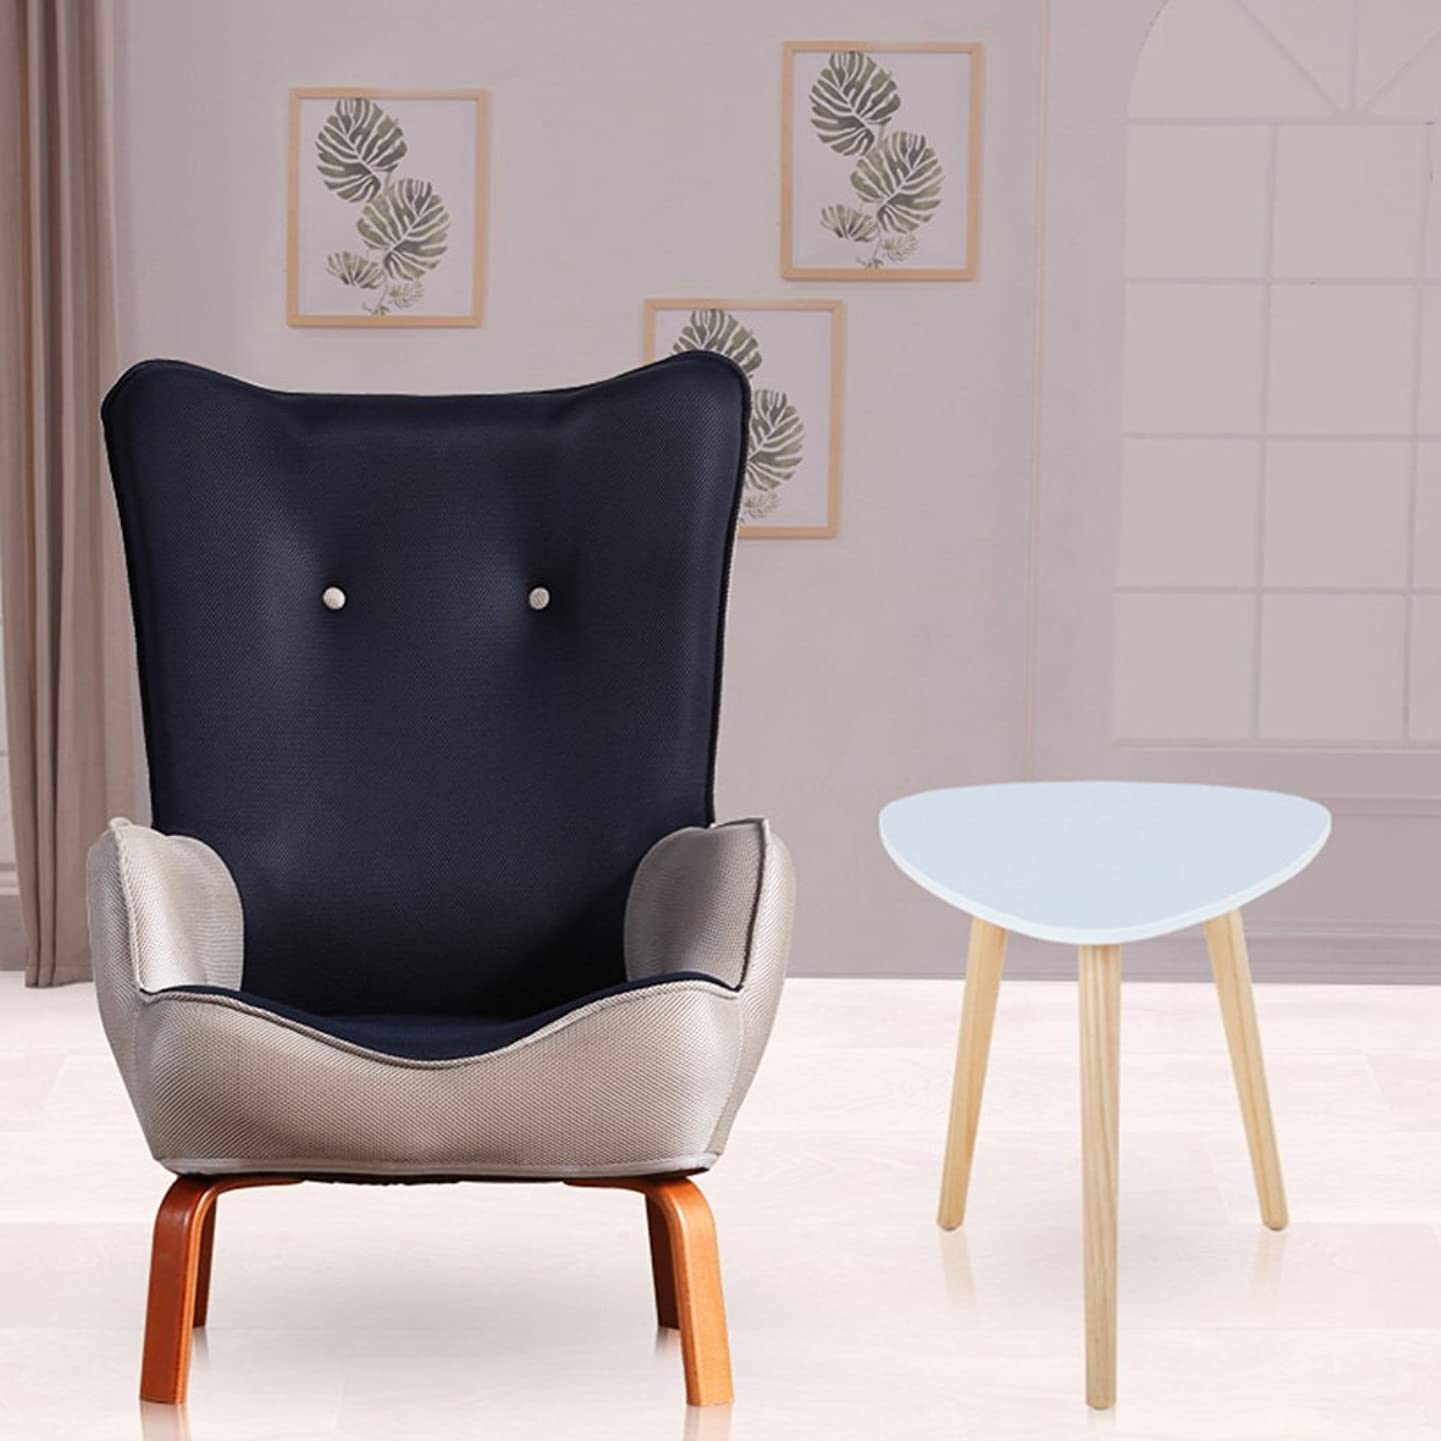 MEIDUO Bar stools Kids Childrens with Fabric Chair Armchair Sofa Seat Stool (Color : Navy Blue, Size : Chair and Table)